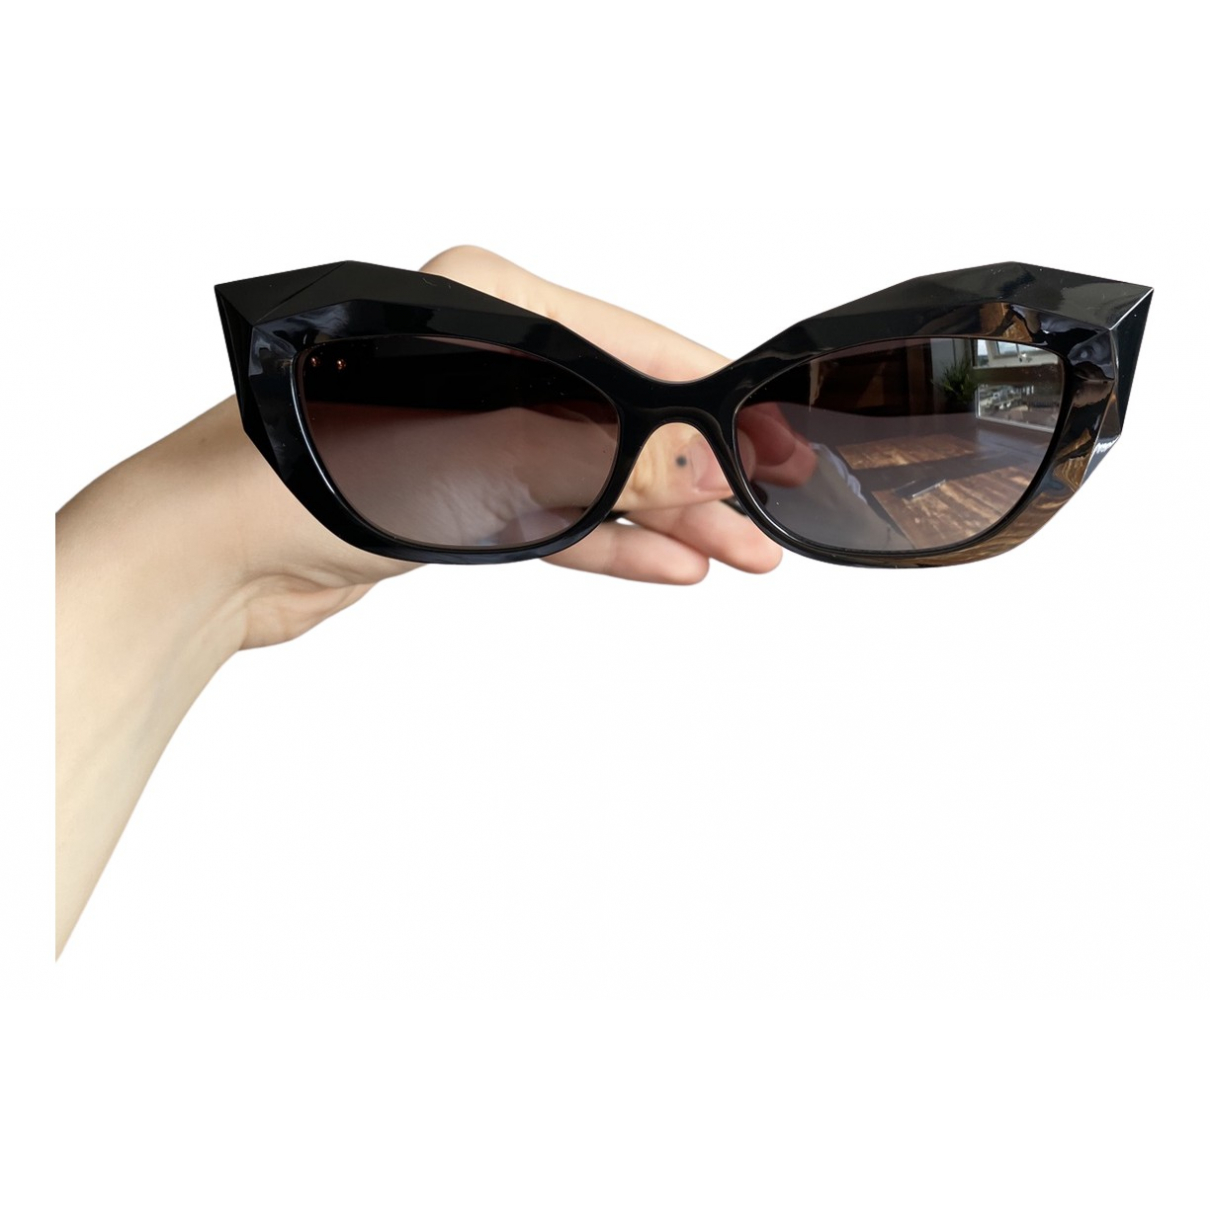 Dolce & Gabbana N Black Sunglasses for Women N